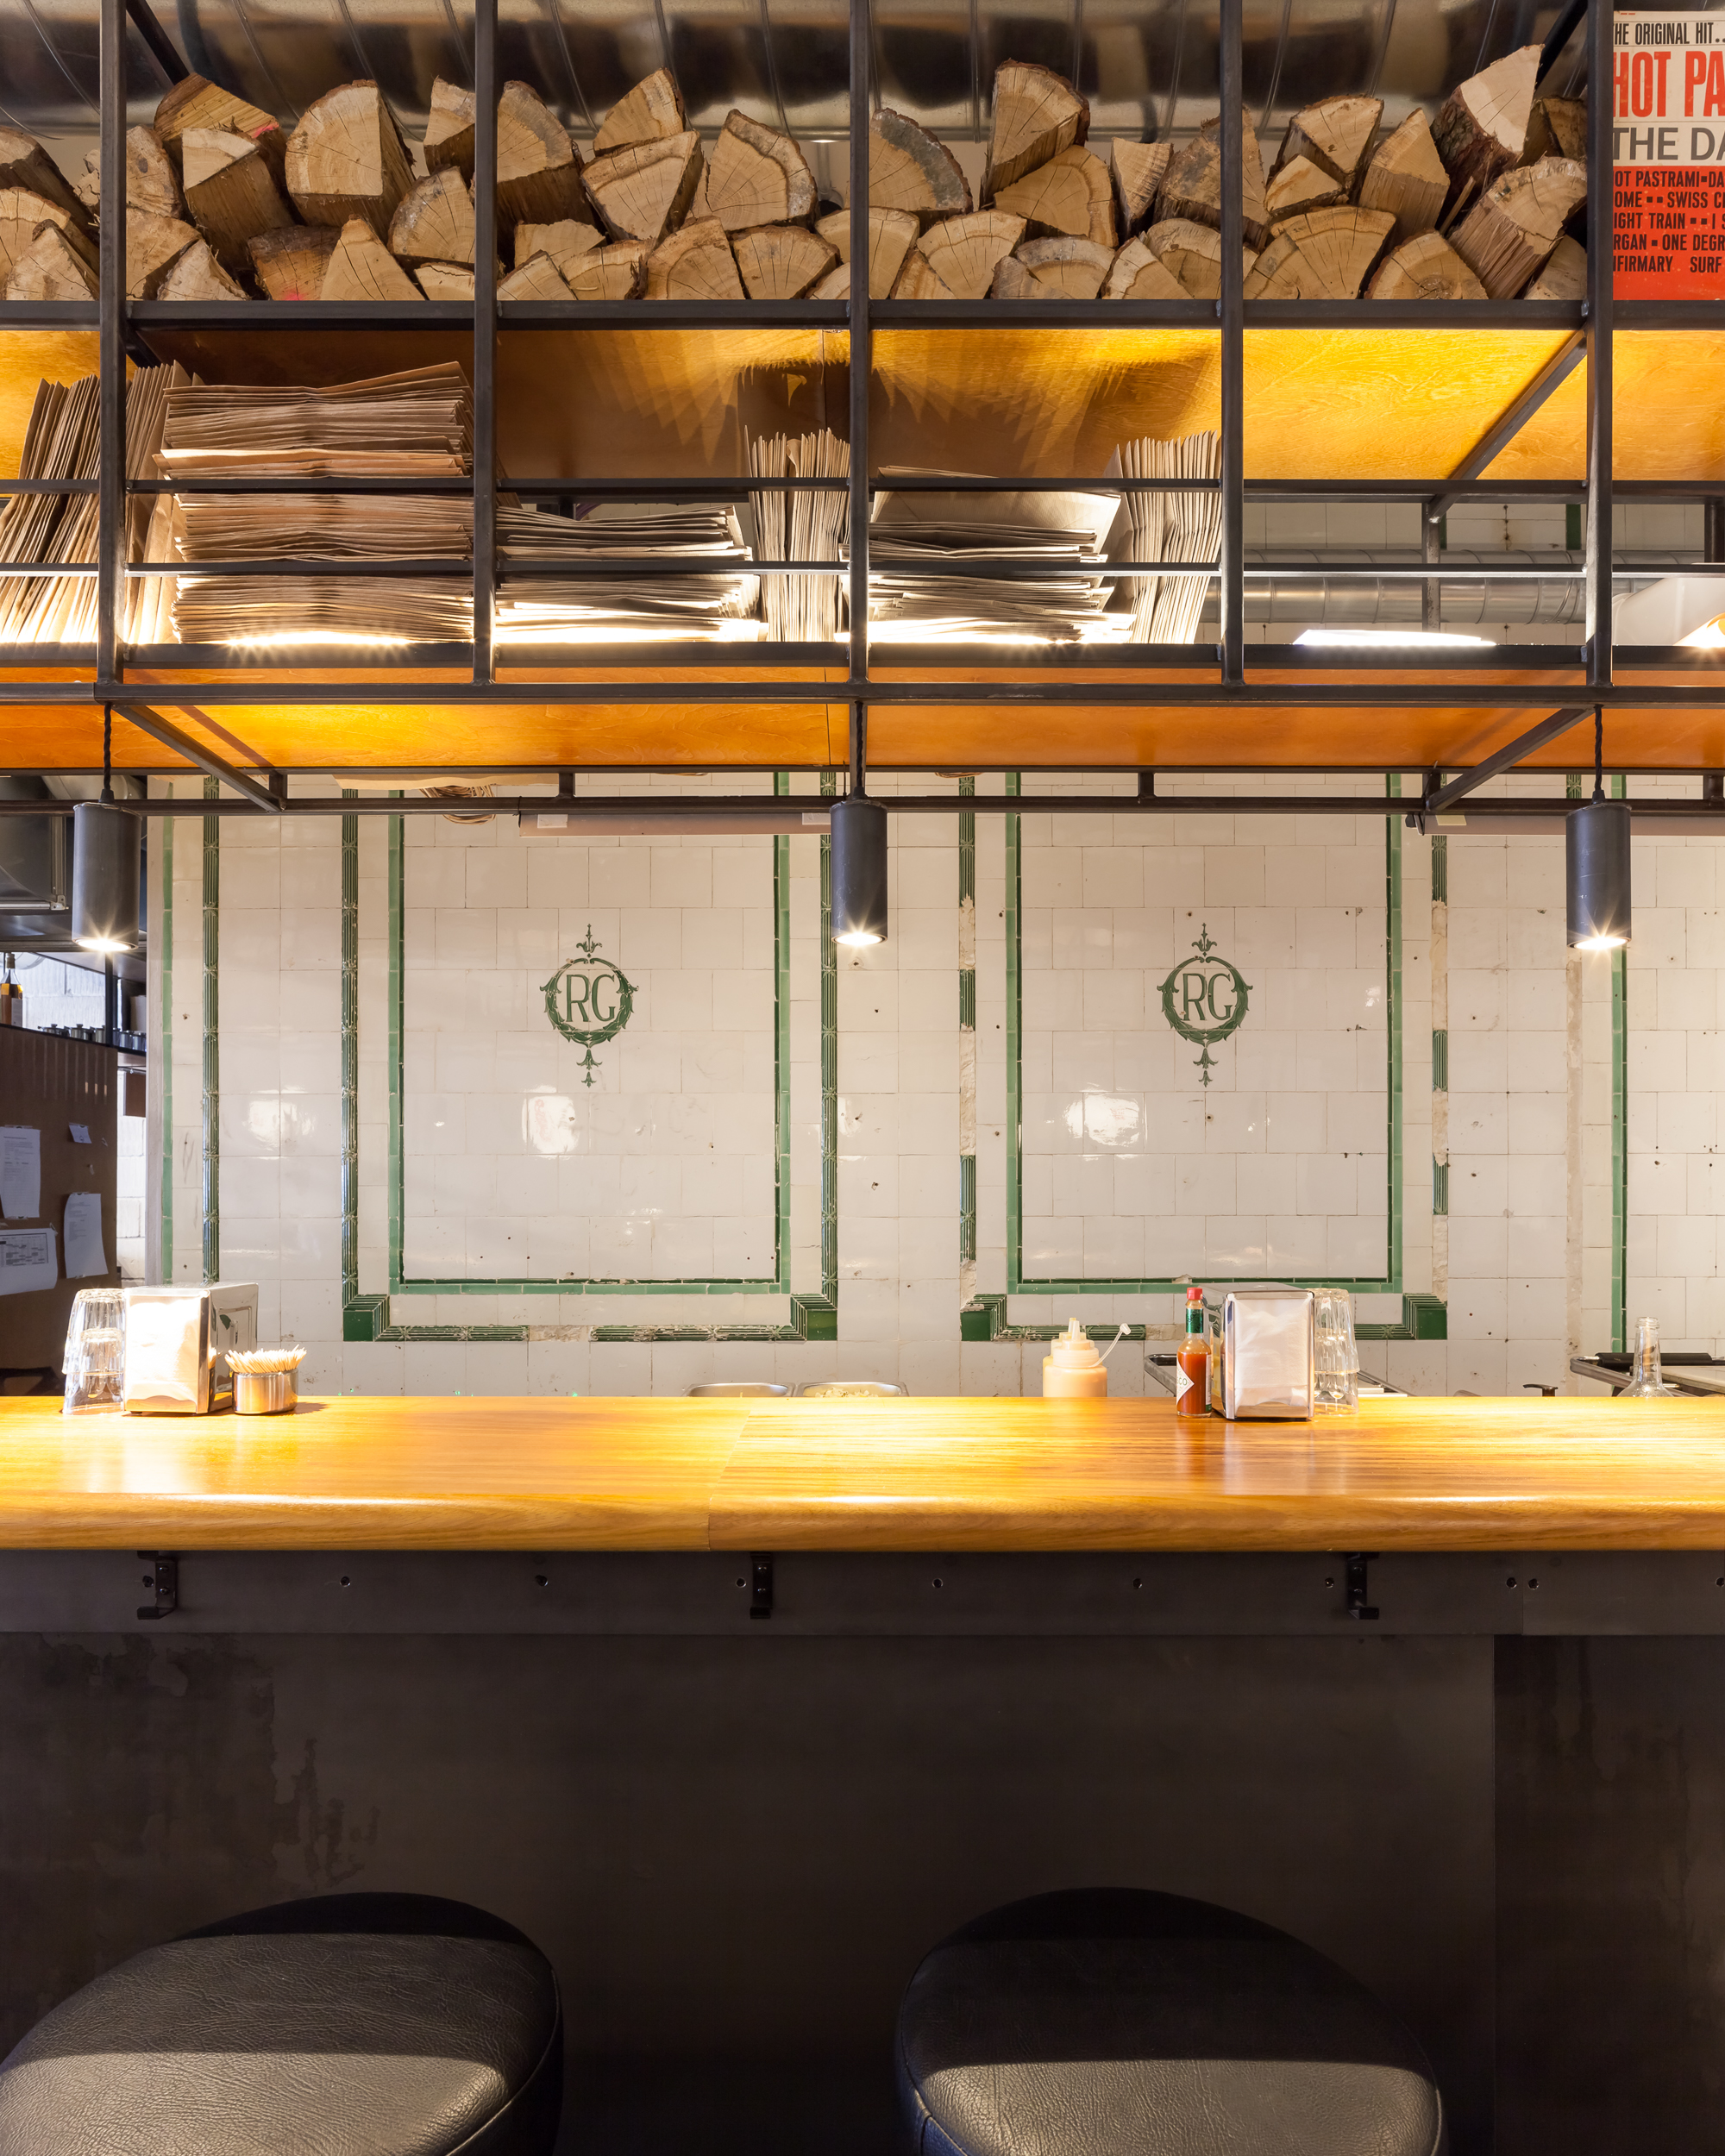 Pano_0541_0547-Edit - MATA_Architects_Montys_Deli.jpg